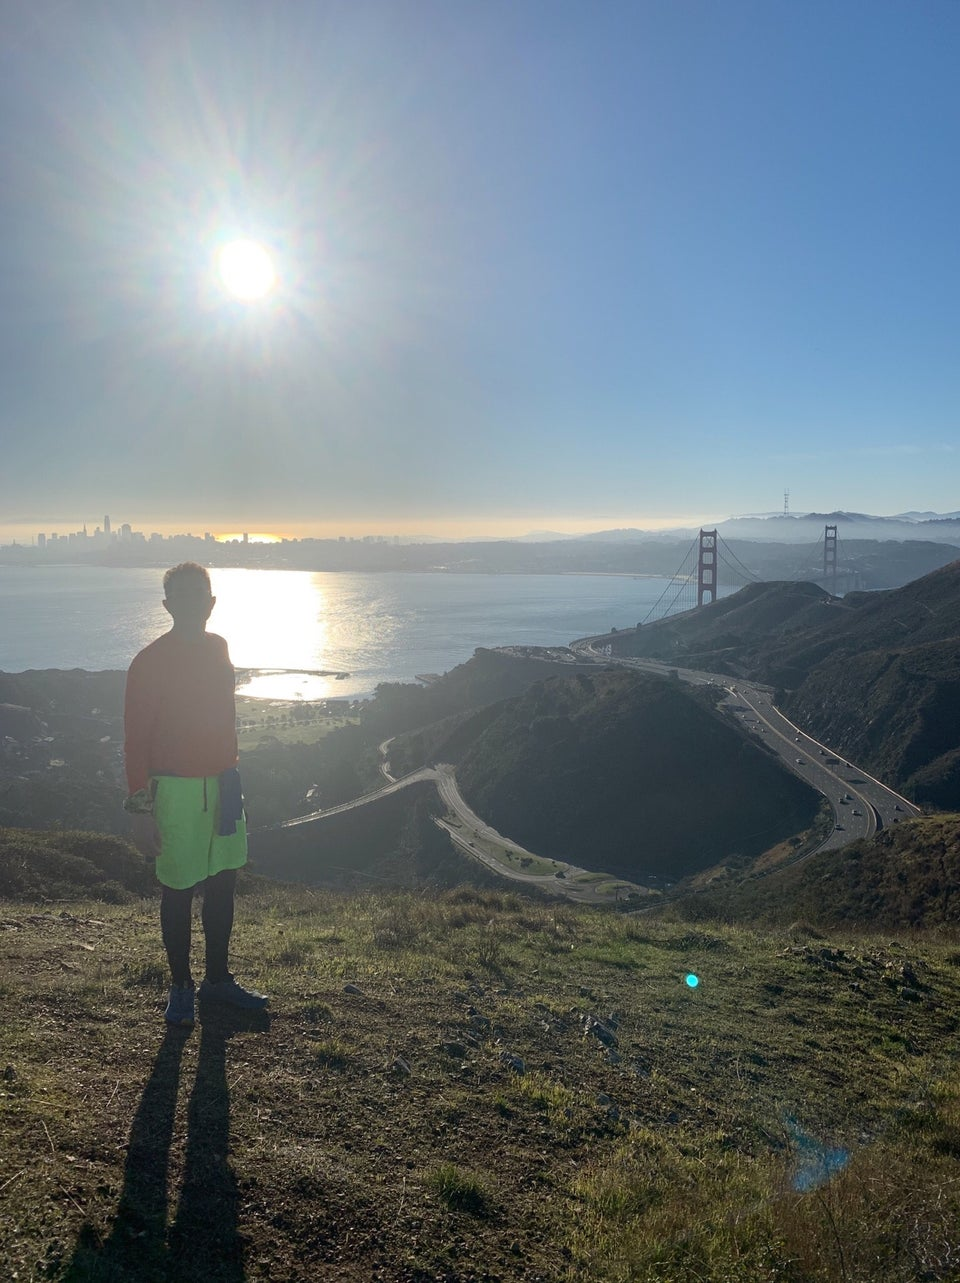 Tantek standing on a hill, backlit by a bright sun in the blue sky, the San Francisco skyline and bay behind him, Golden Gate bridge towers visible behind the Marin headlands to the right, the 101 freeway far below, sparse with tiny cars.